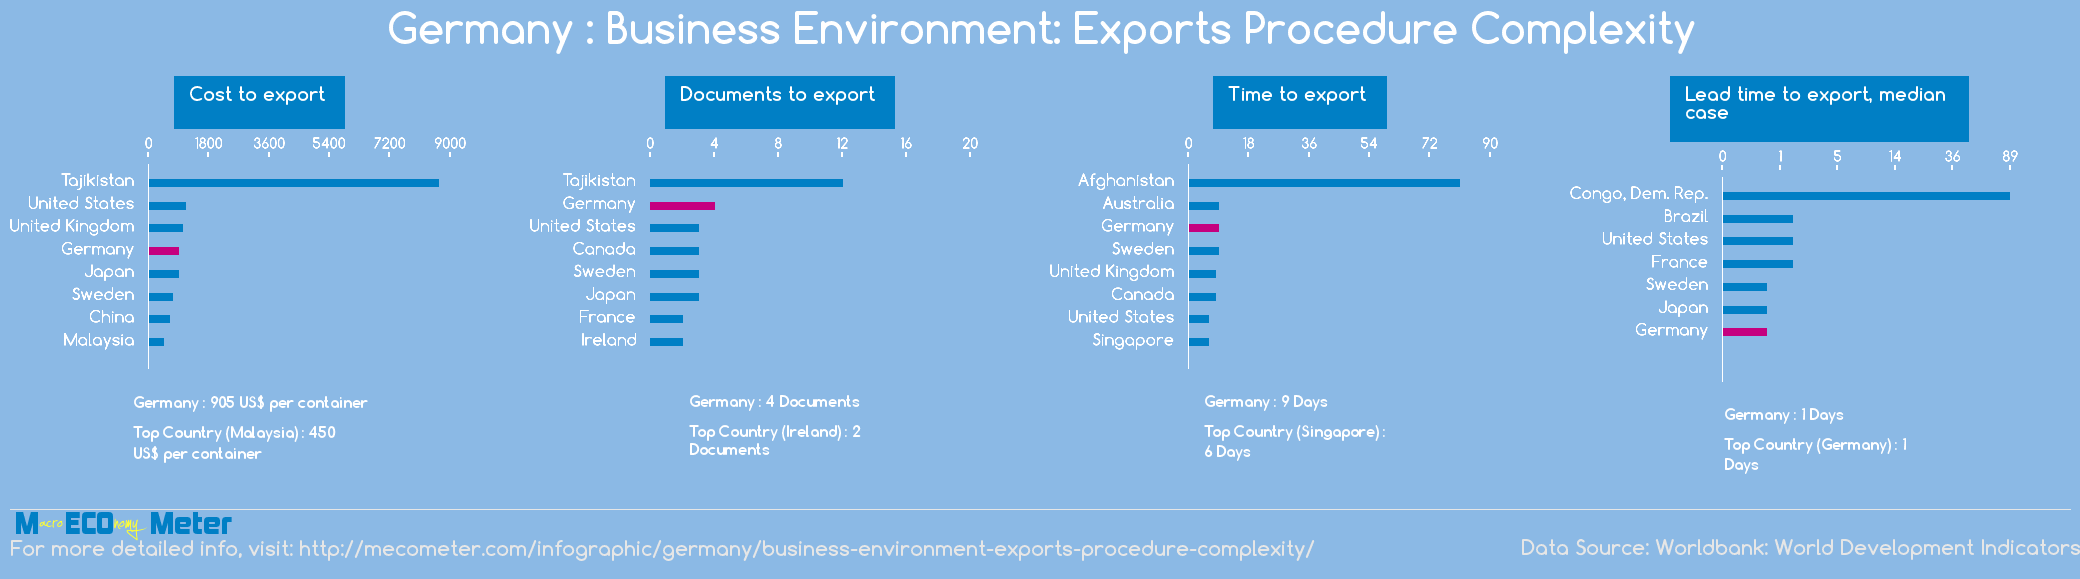 Germany : Business Environment: Exports Procedure Complexity